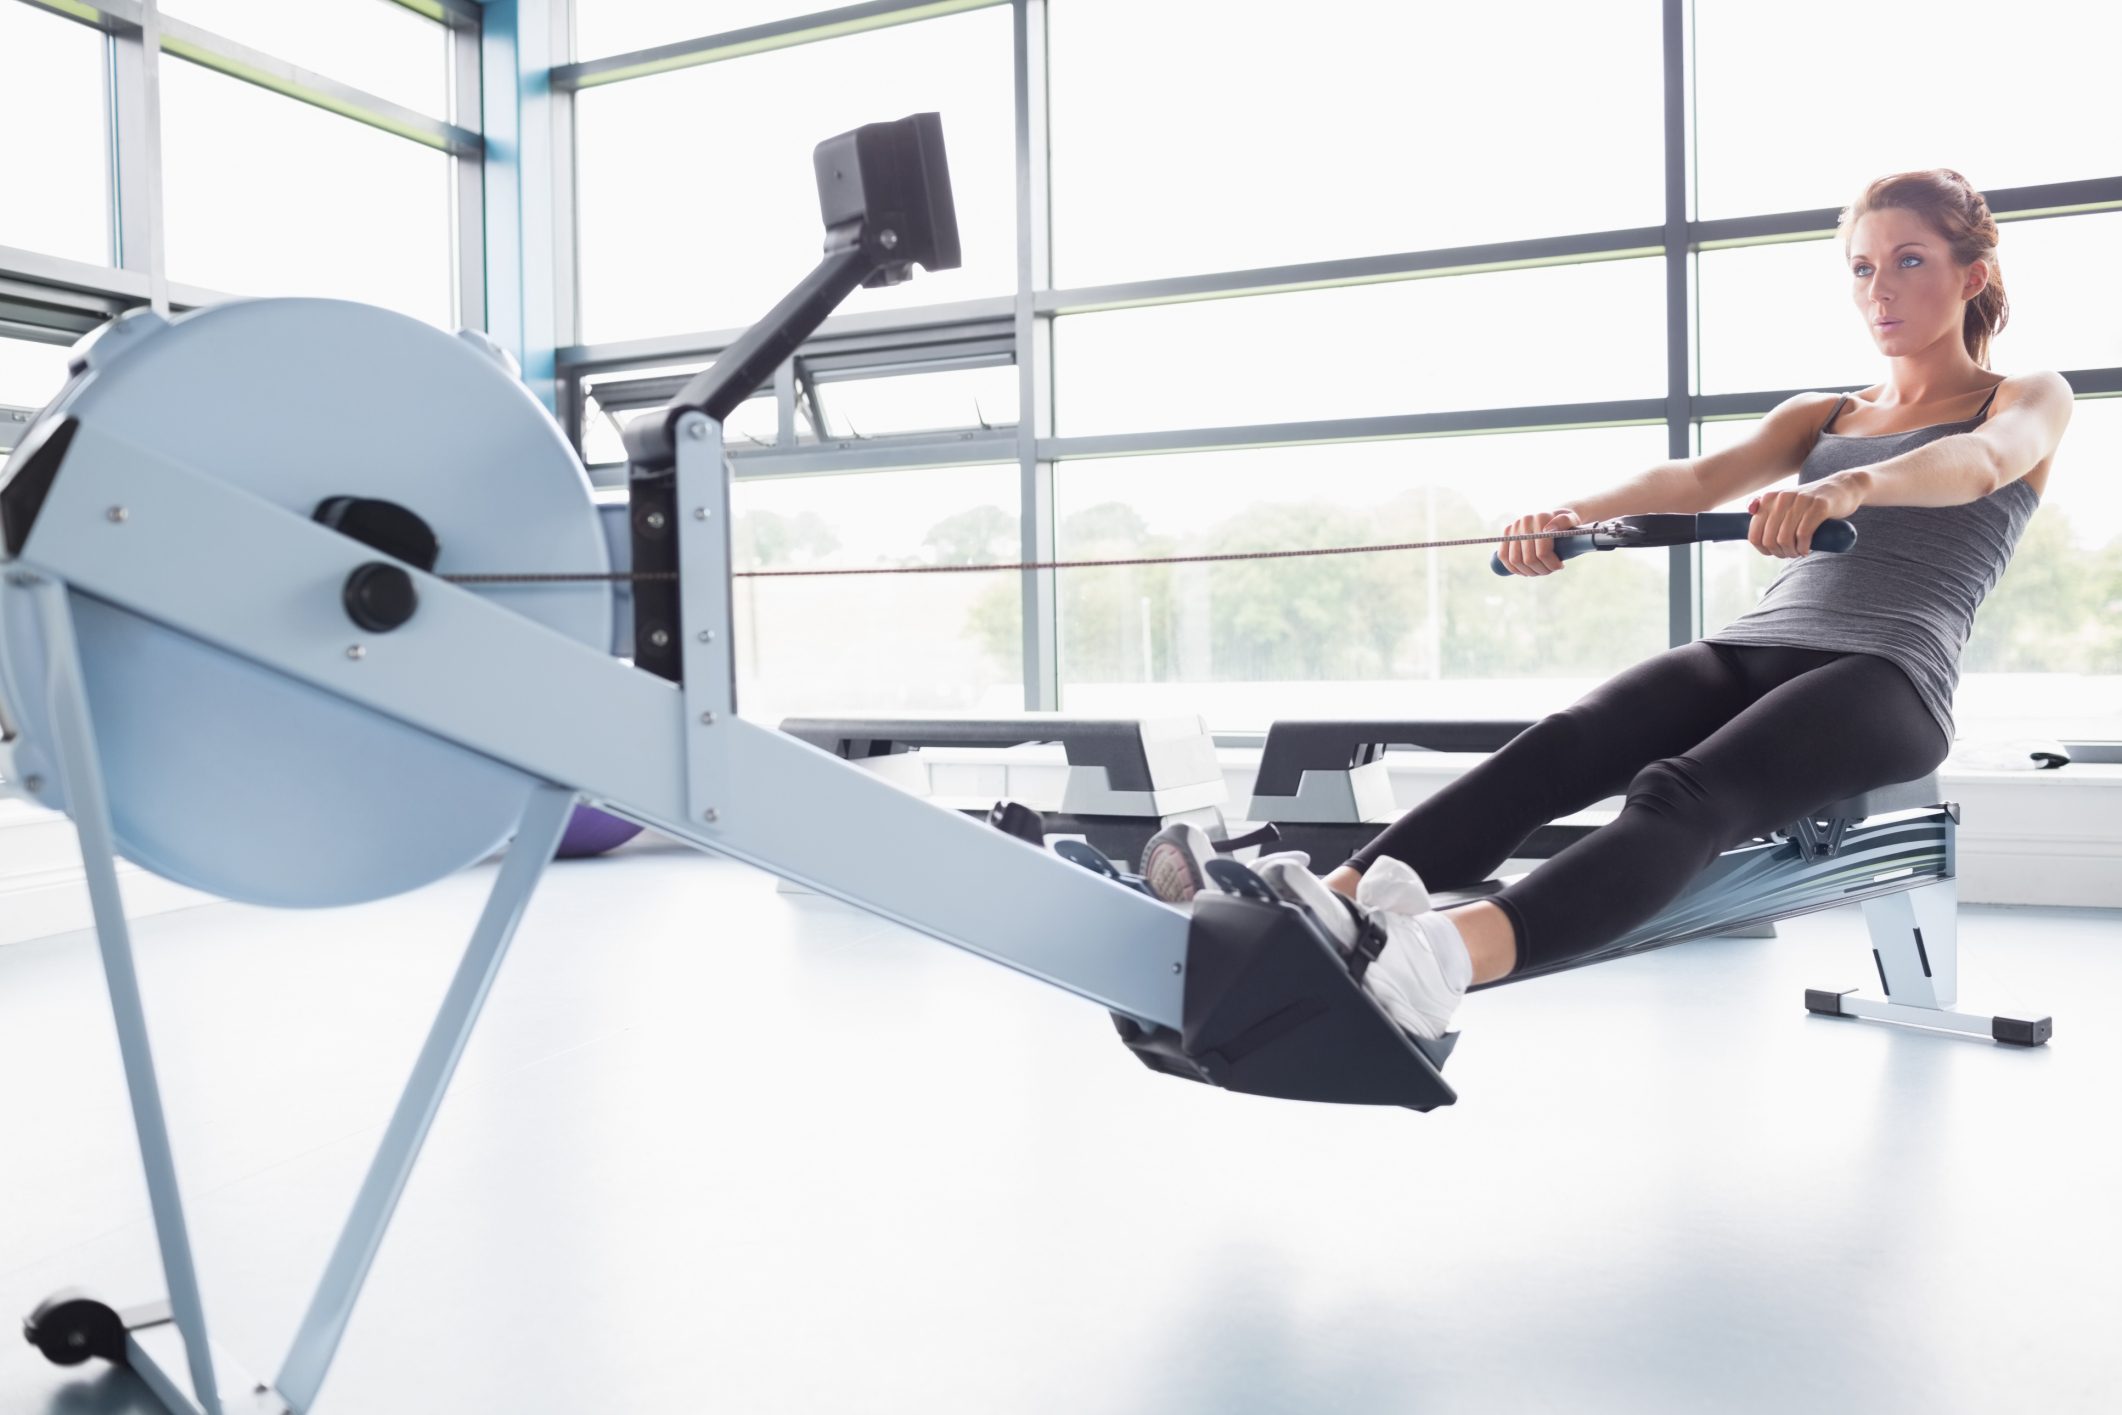 Information On The Proform Crosswalk 325x Treadmill A wide variety of elliptical trainer parts options are available to you, such as local service location, showroom location. https www sportsrec com 283223 information on the proform crosswalk 325x treadmill html